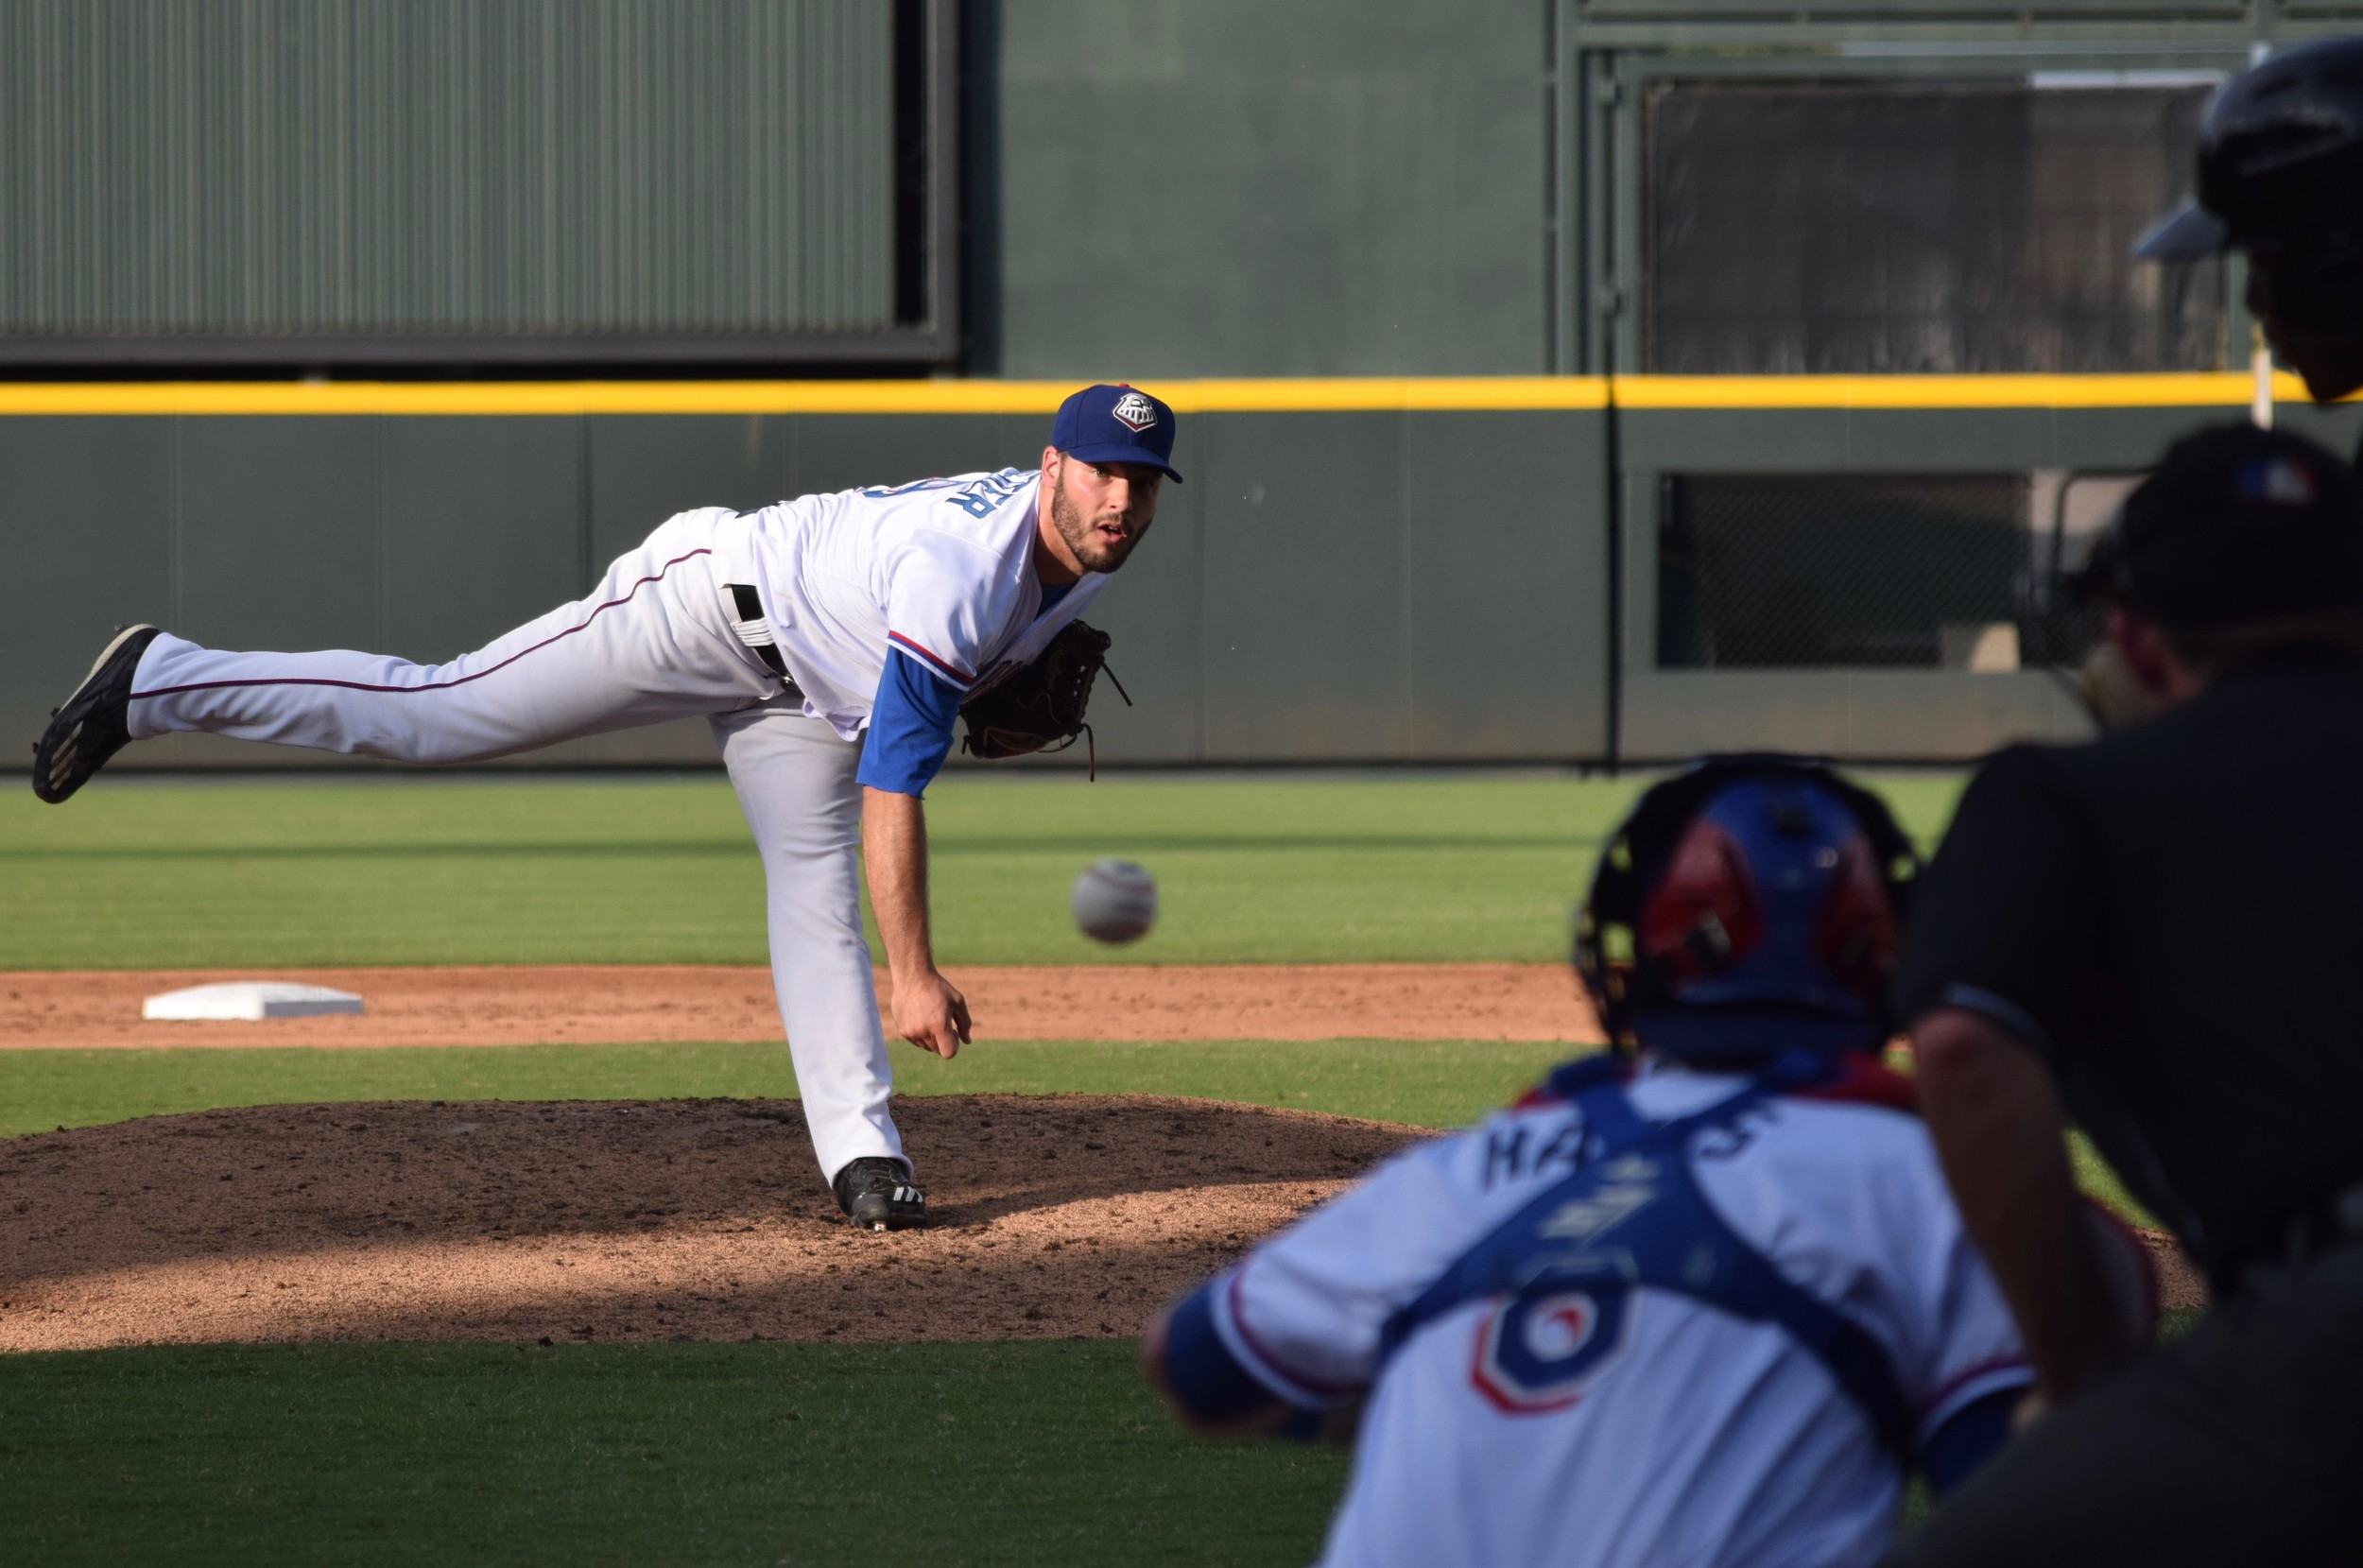 David Ledbetter lasted six innings and gave up three runs on four hits with five strikeouts in Round Rock's 5-4 win against Albuquerque Sunday night.